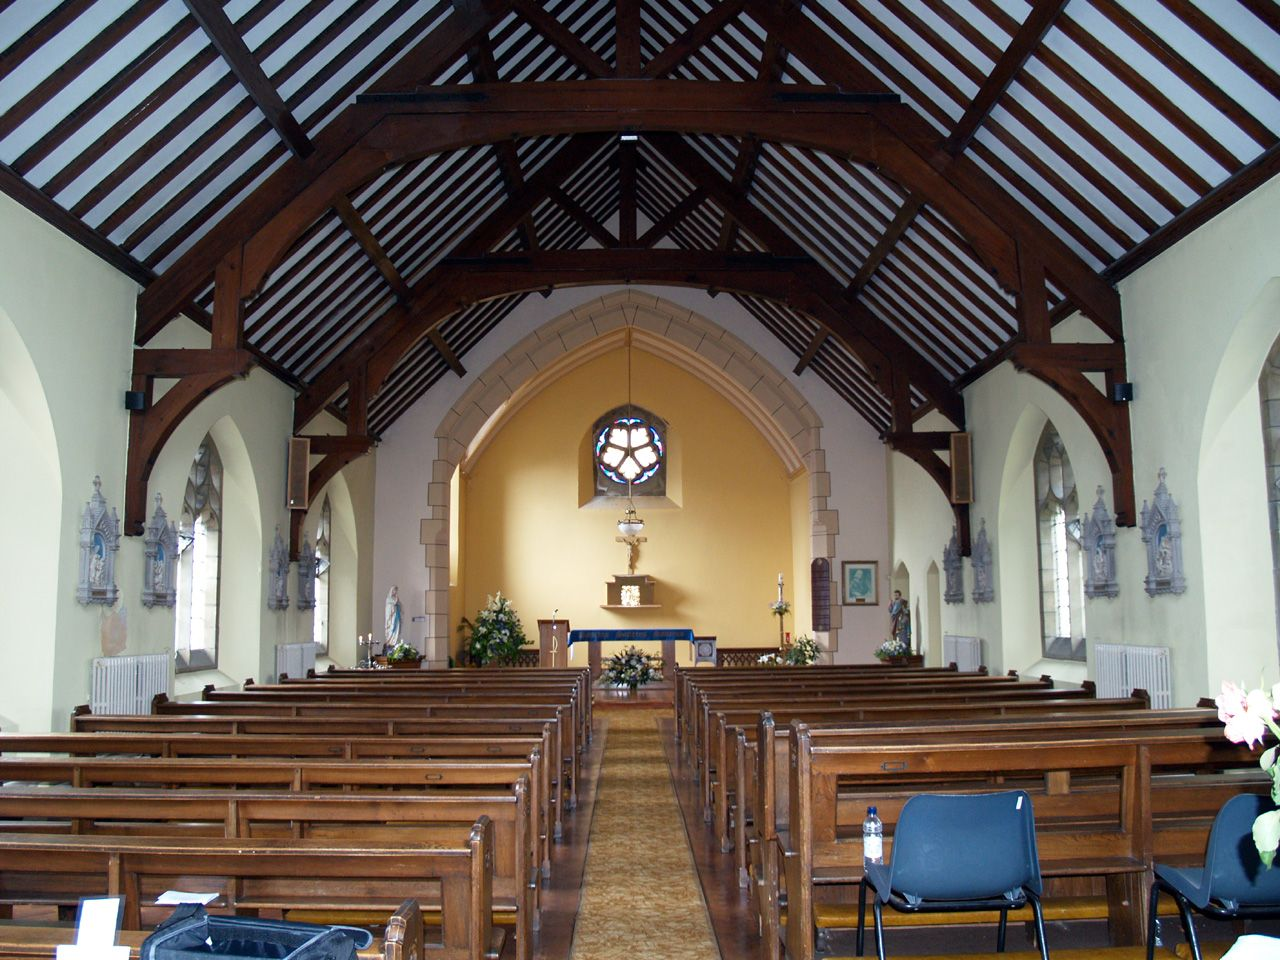 1000 images about church interiors on pinterest lutheran church music and furniture chairs - Modern Church Interior Design Ideas